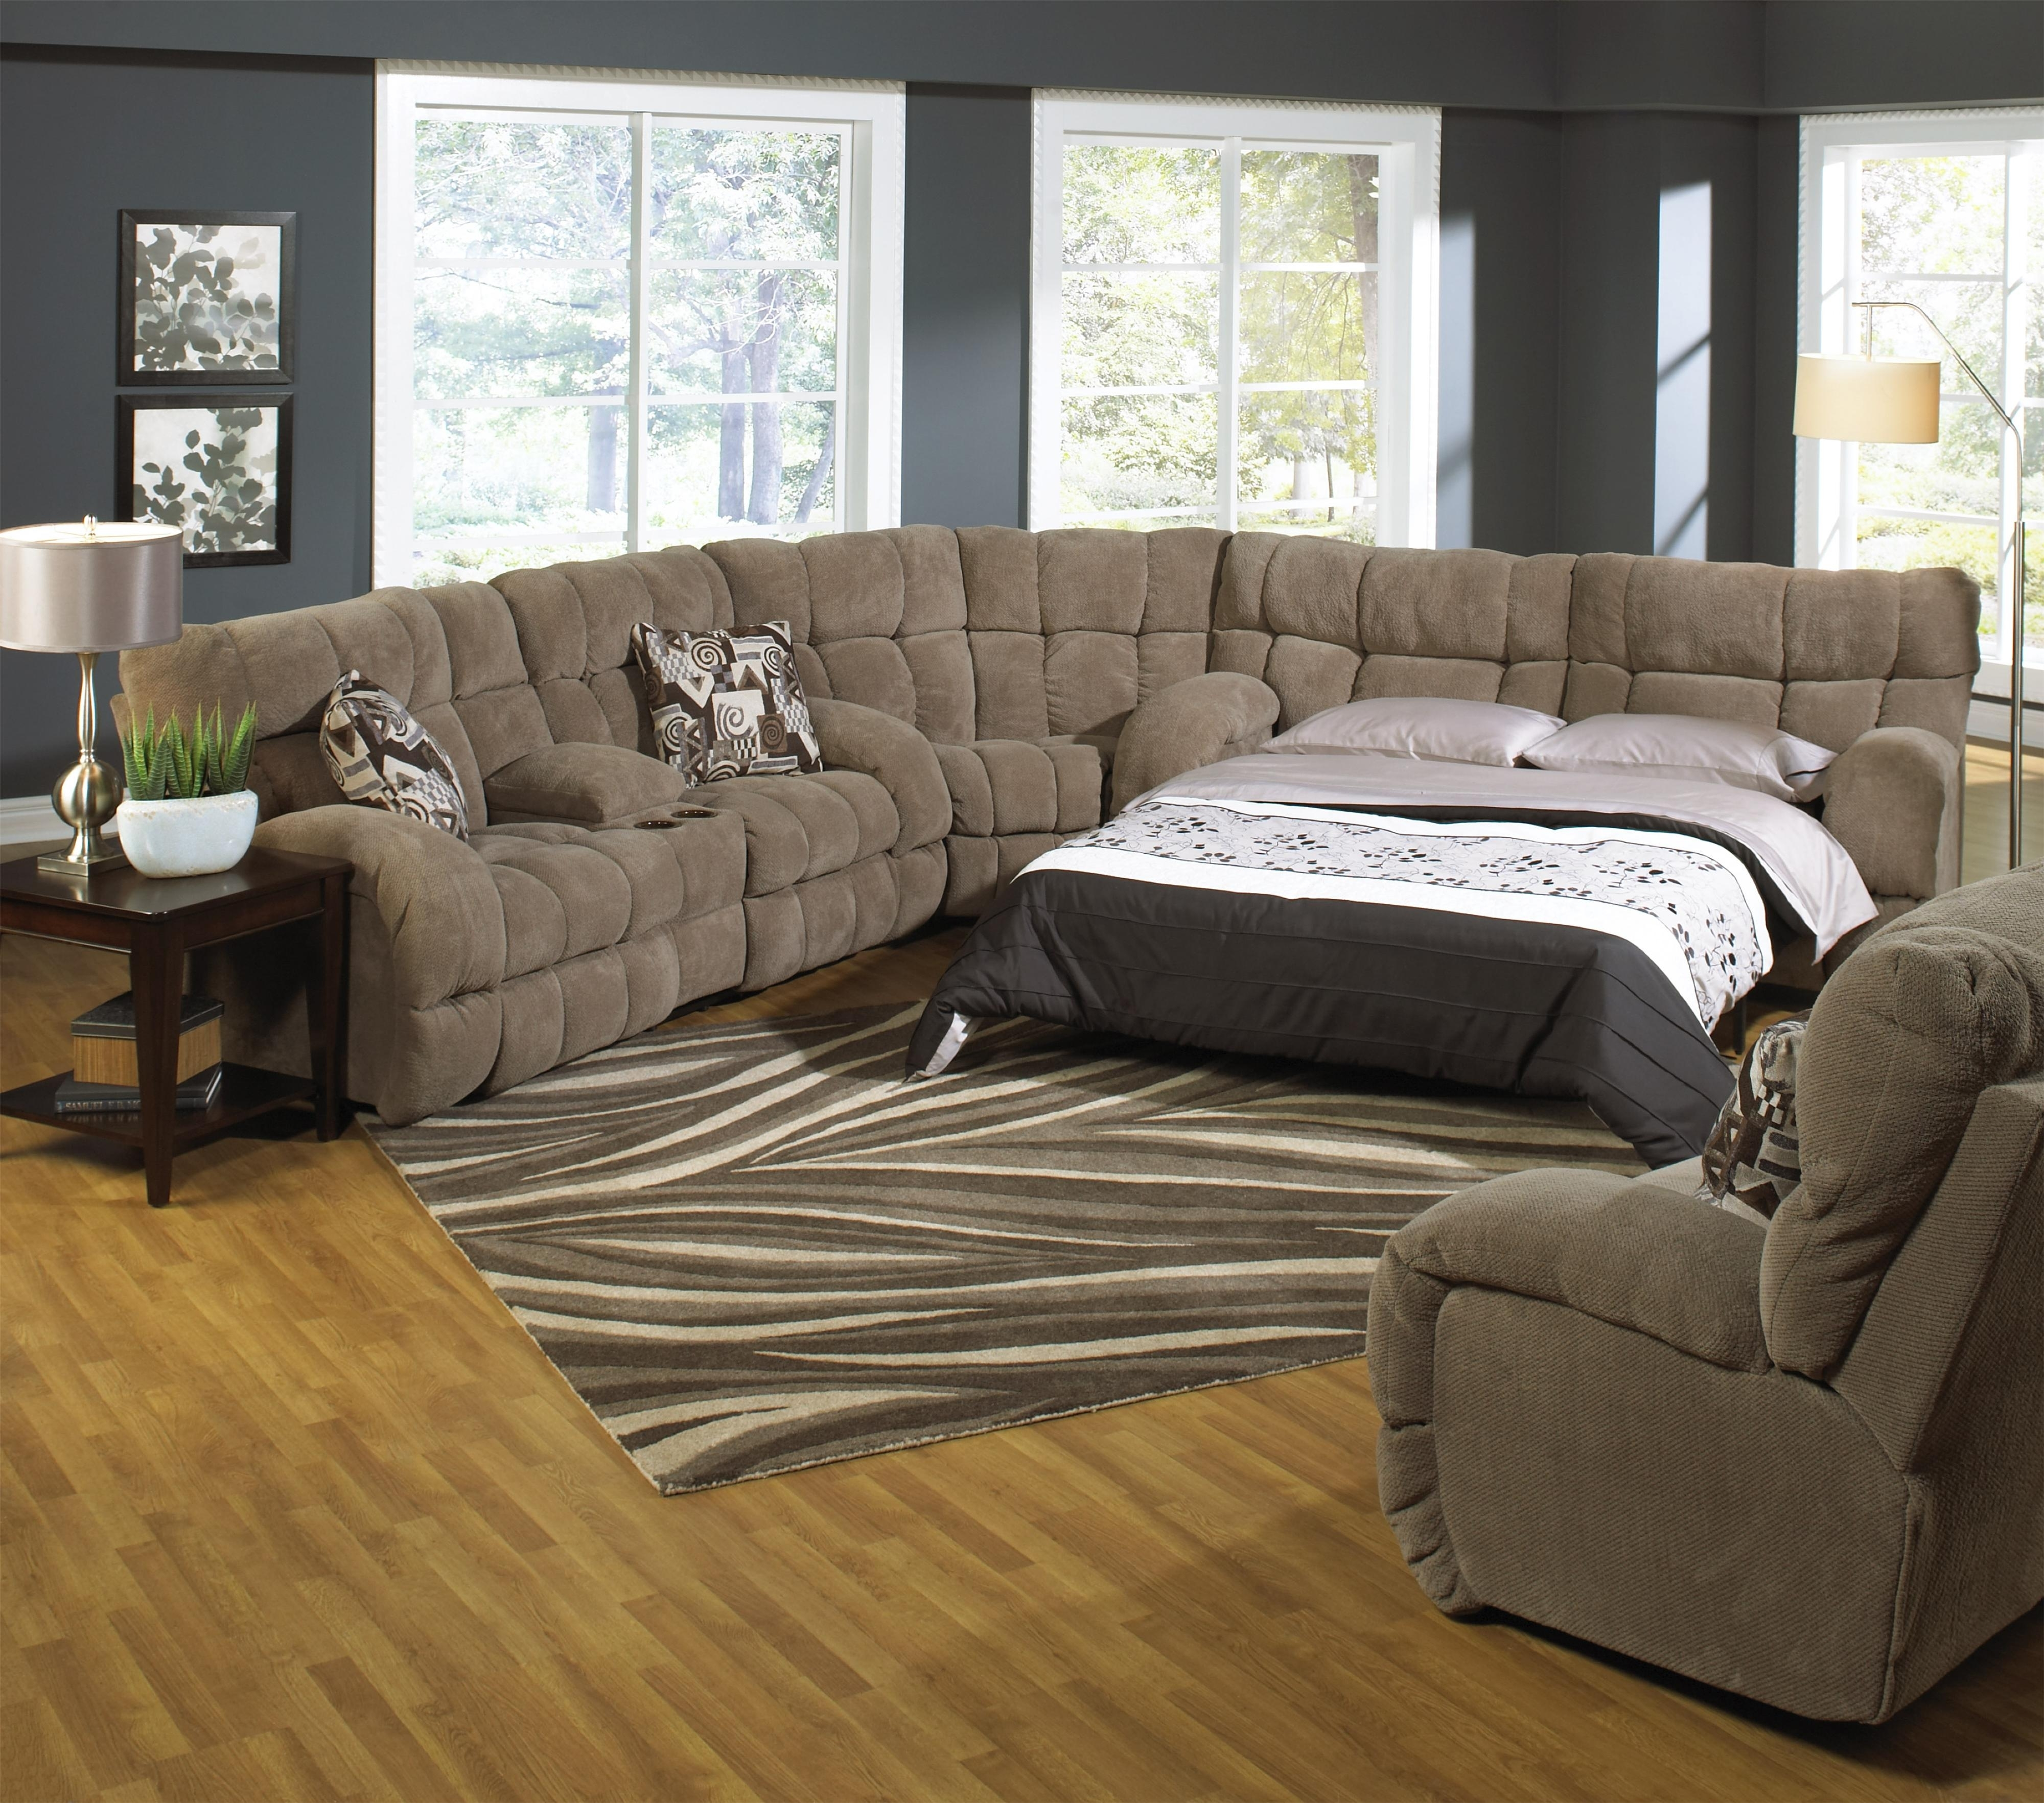 Featured Image of Sectional Sofas With Sleeper